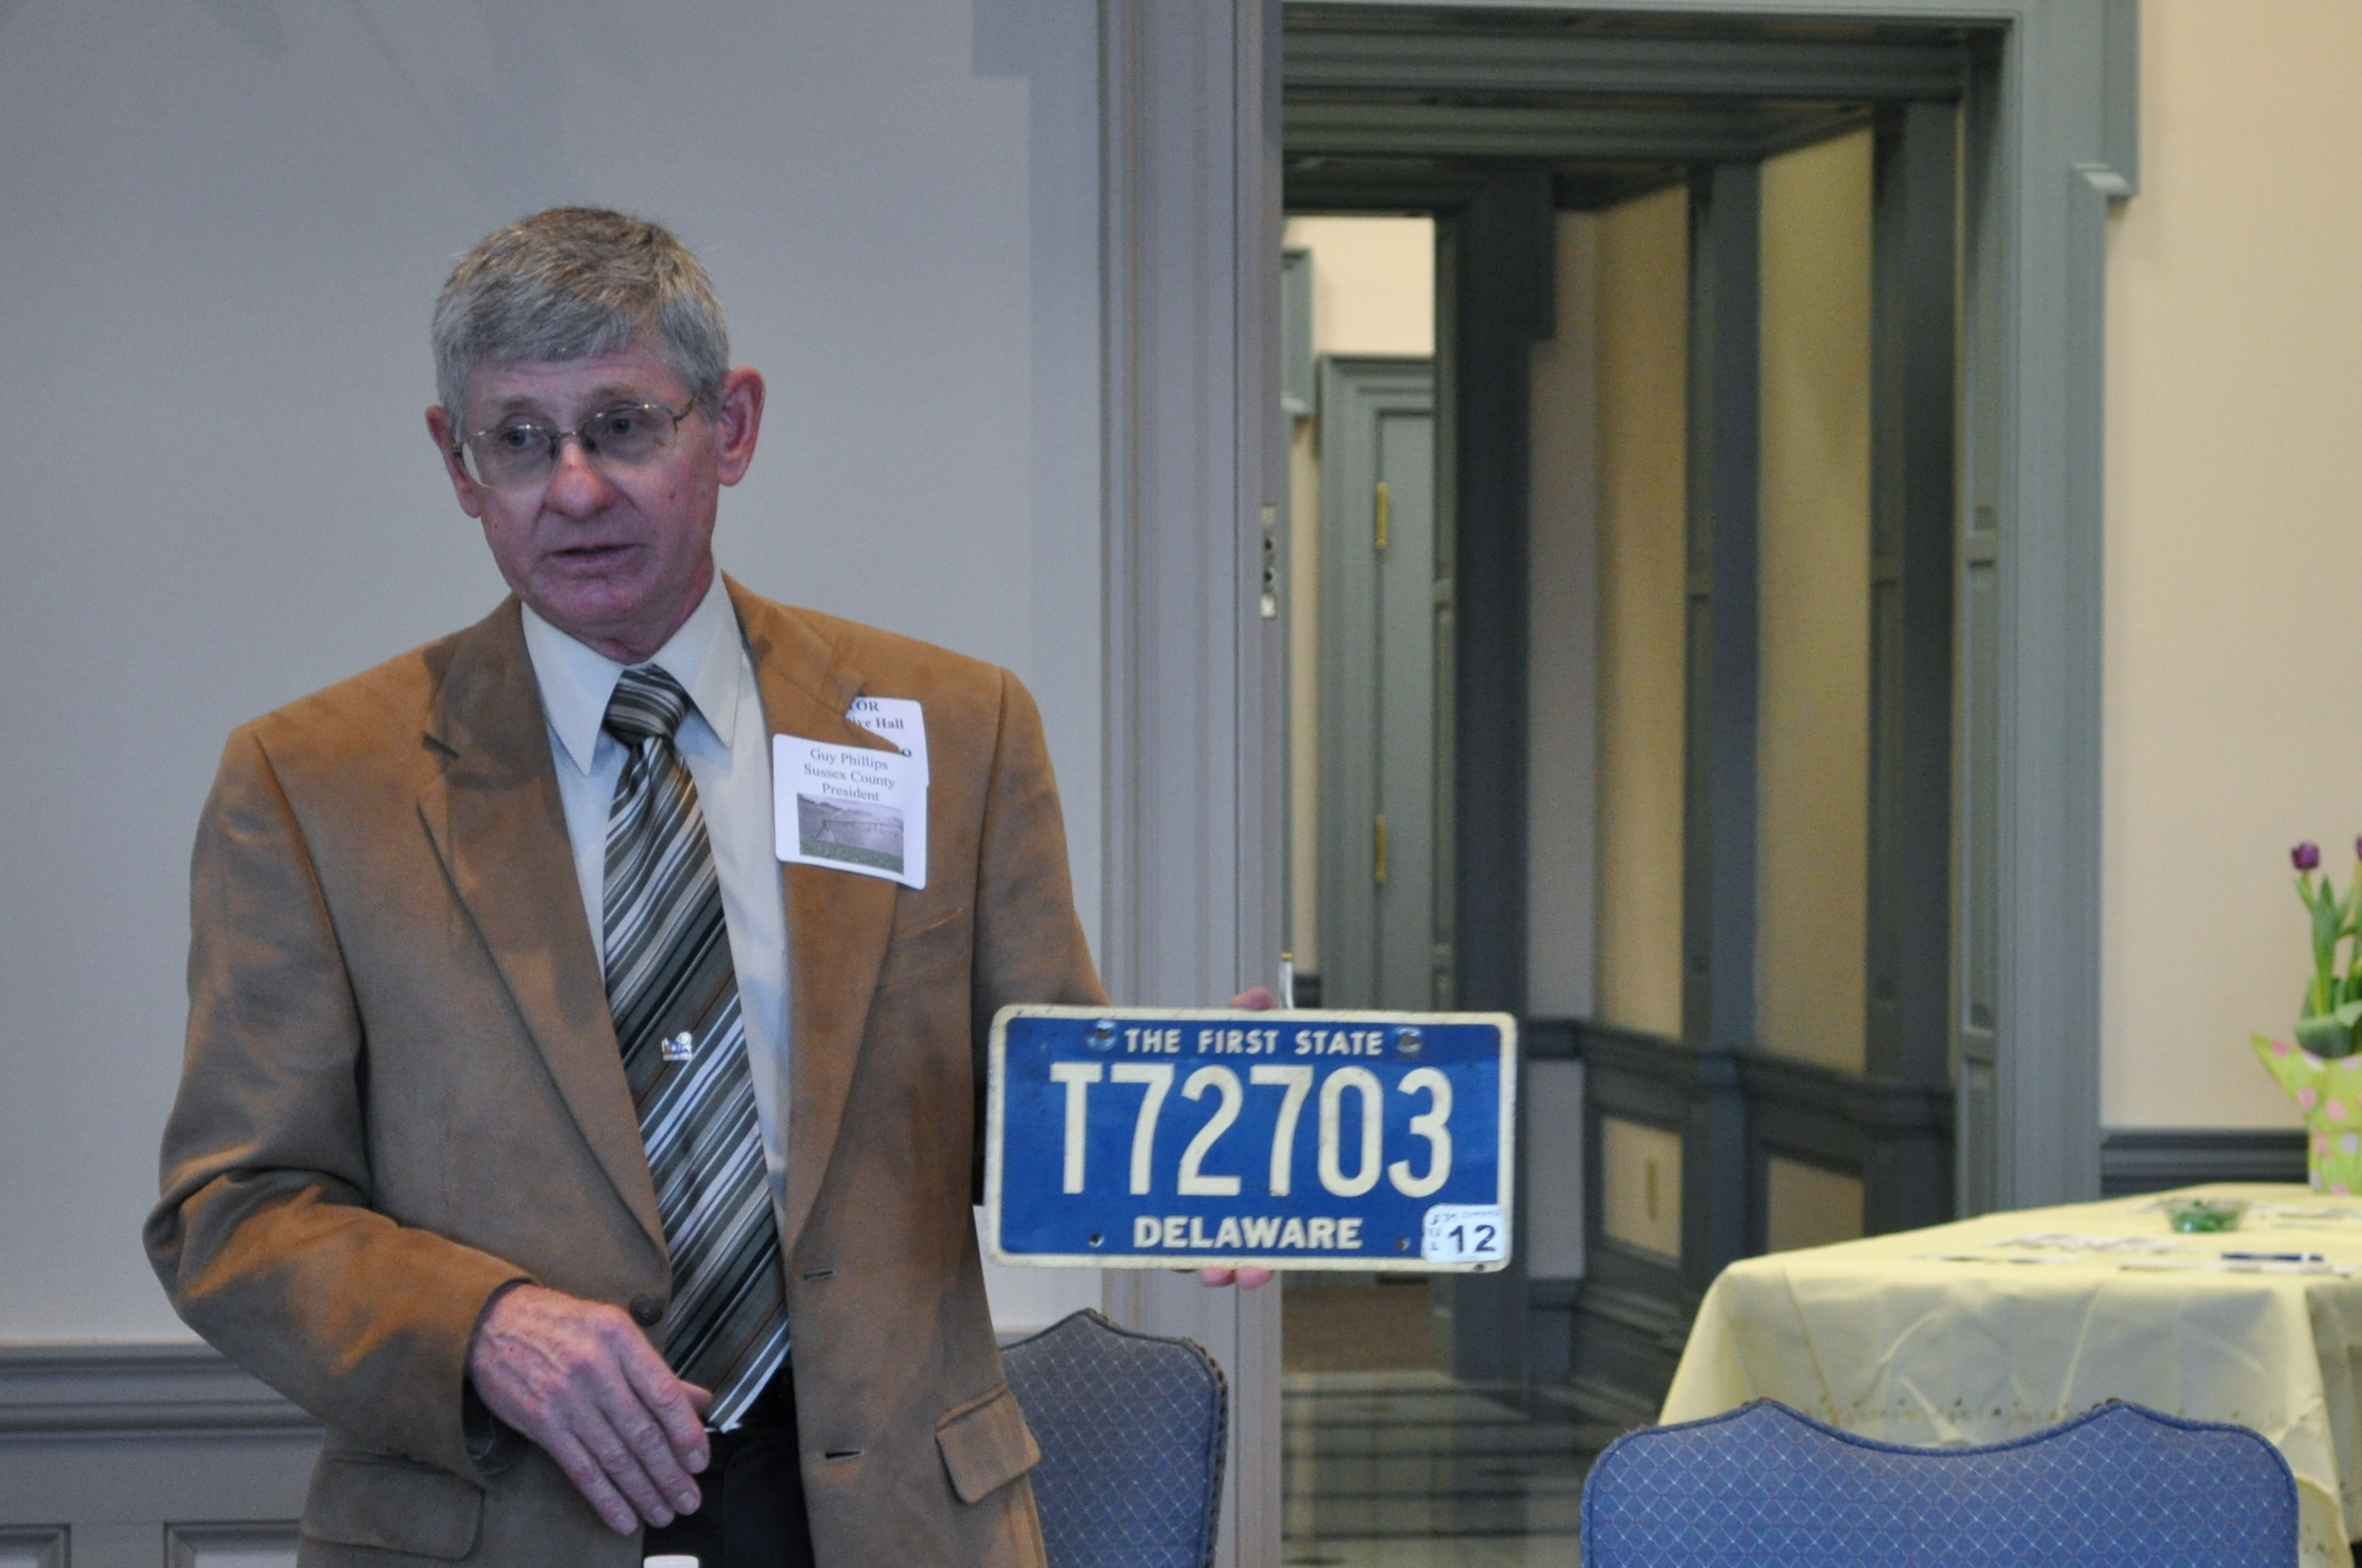 Guy Phillips, Sussex County Farm Bureau President, shows guests a Delaware trailer tag at Tuesday's Legislative Luncheon.